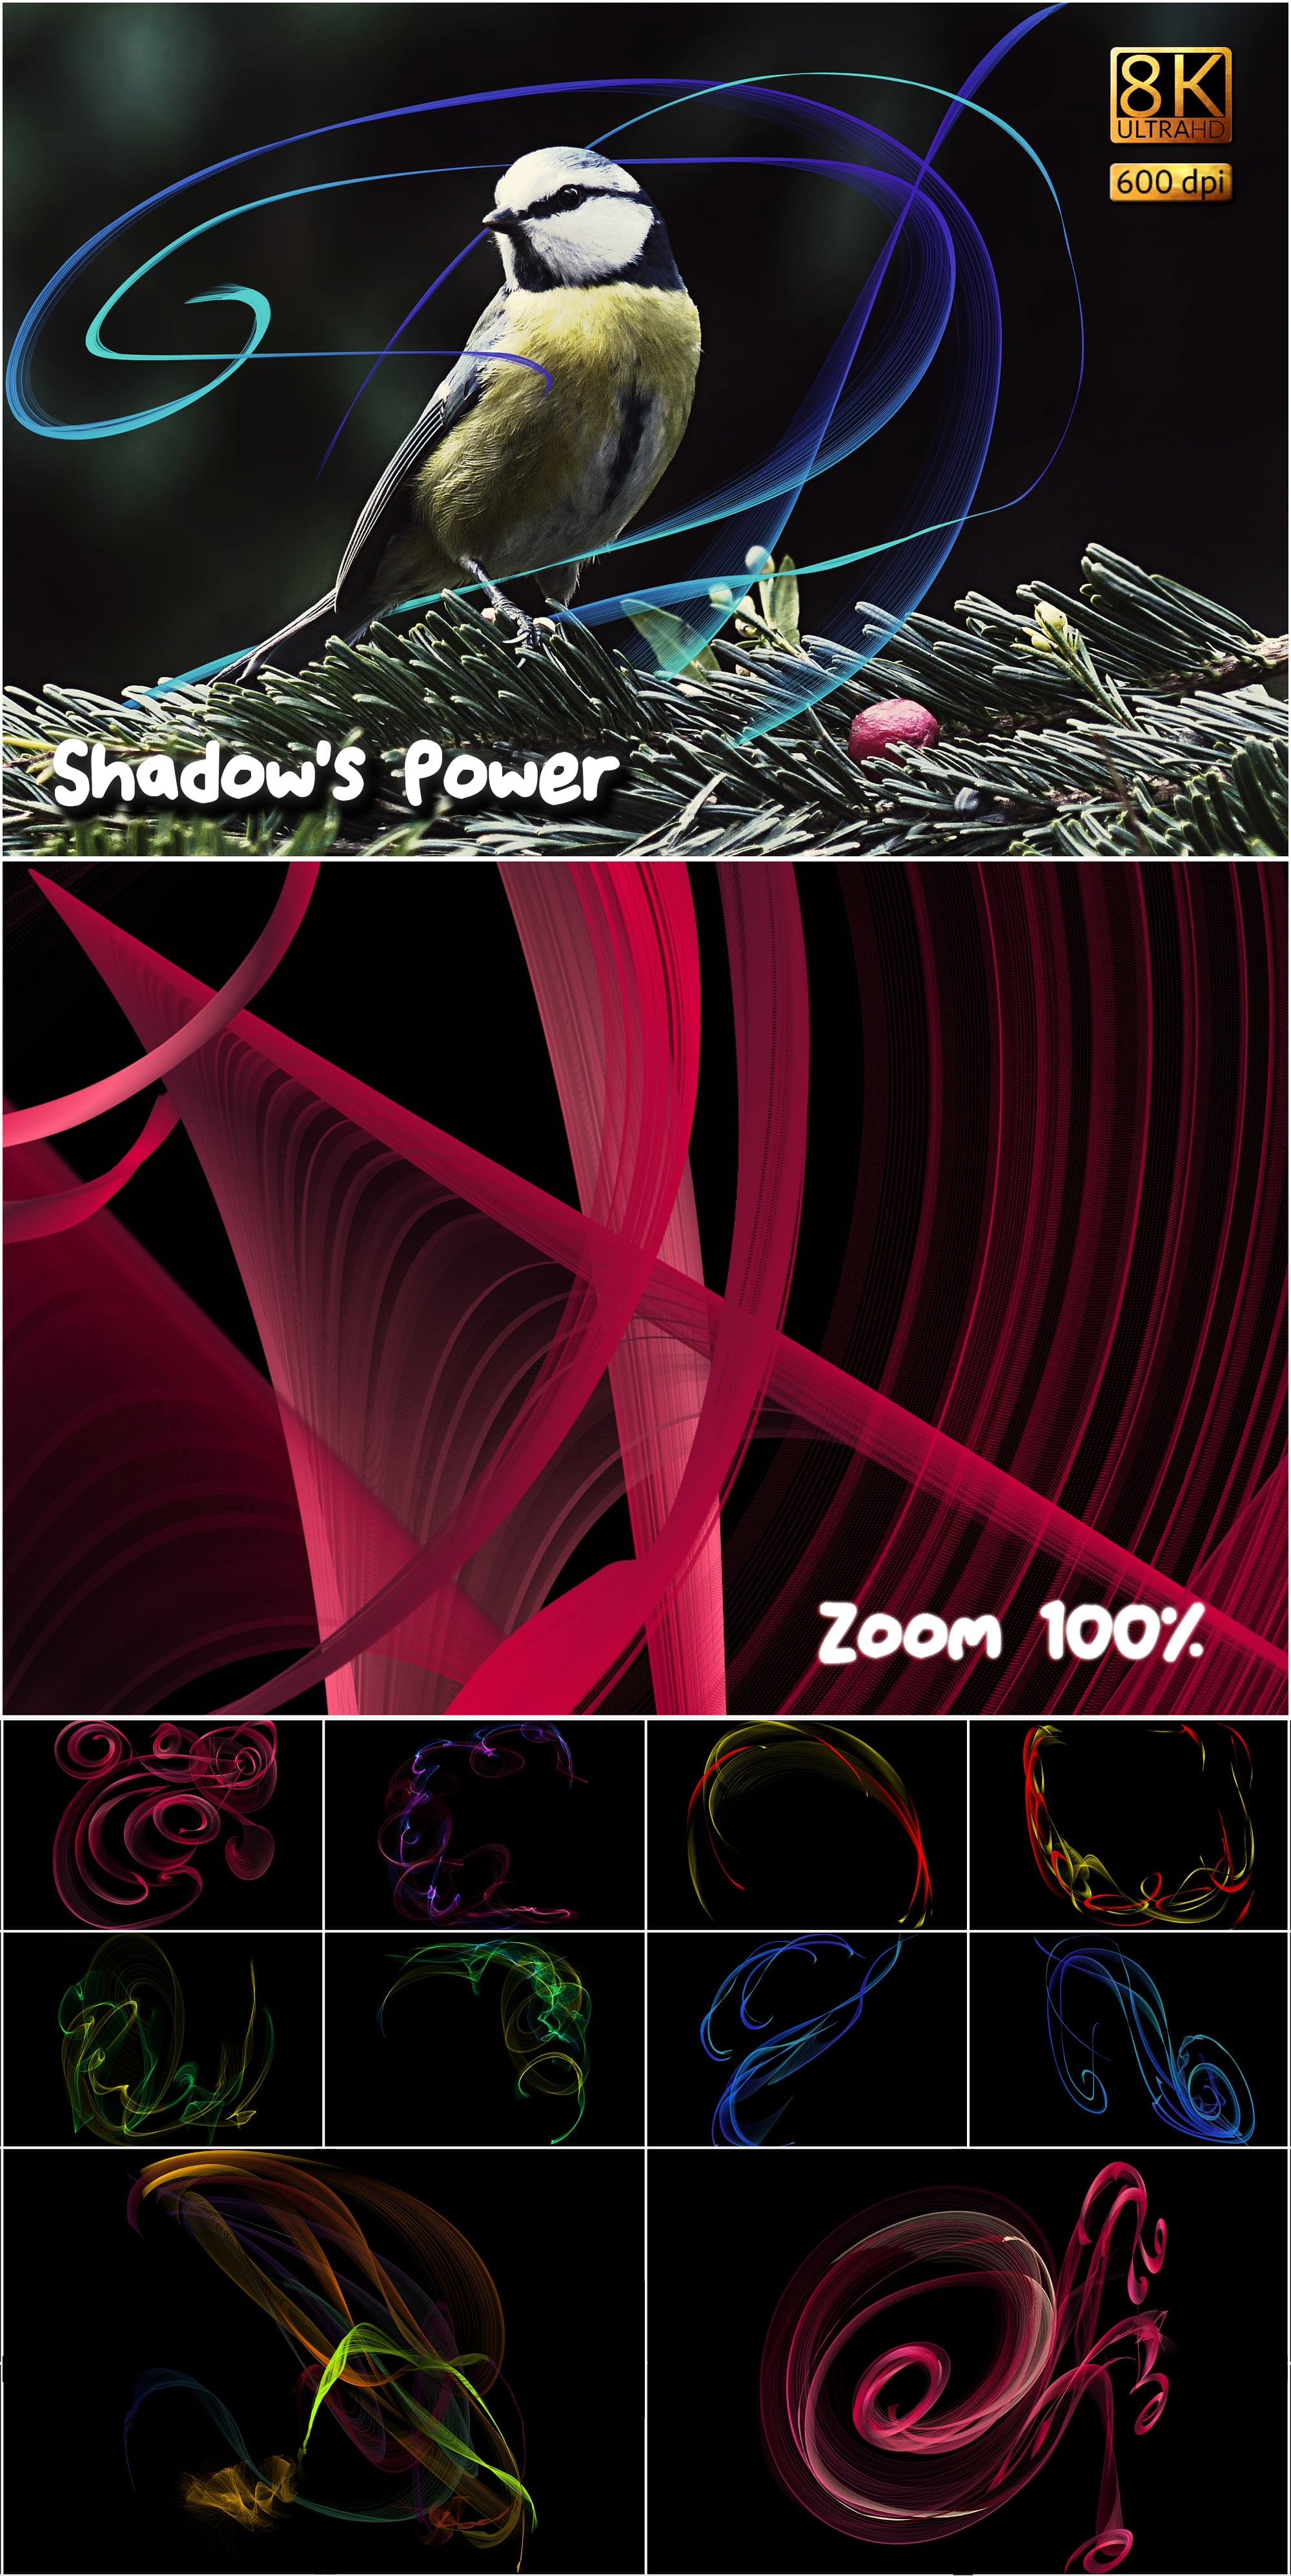 877 Detailed  Alien Overlays - $24 - Shadows Power